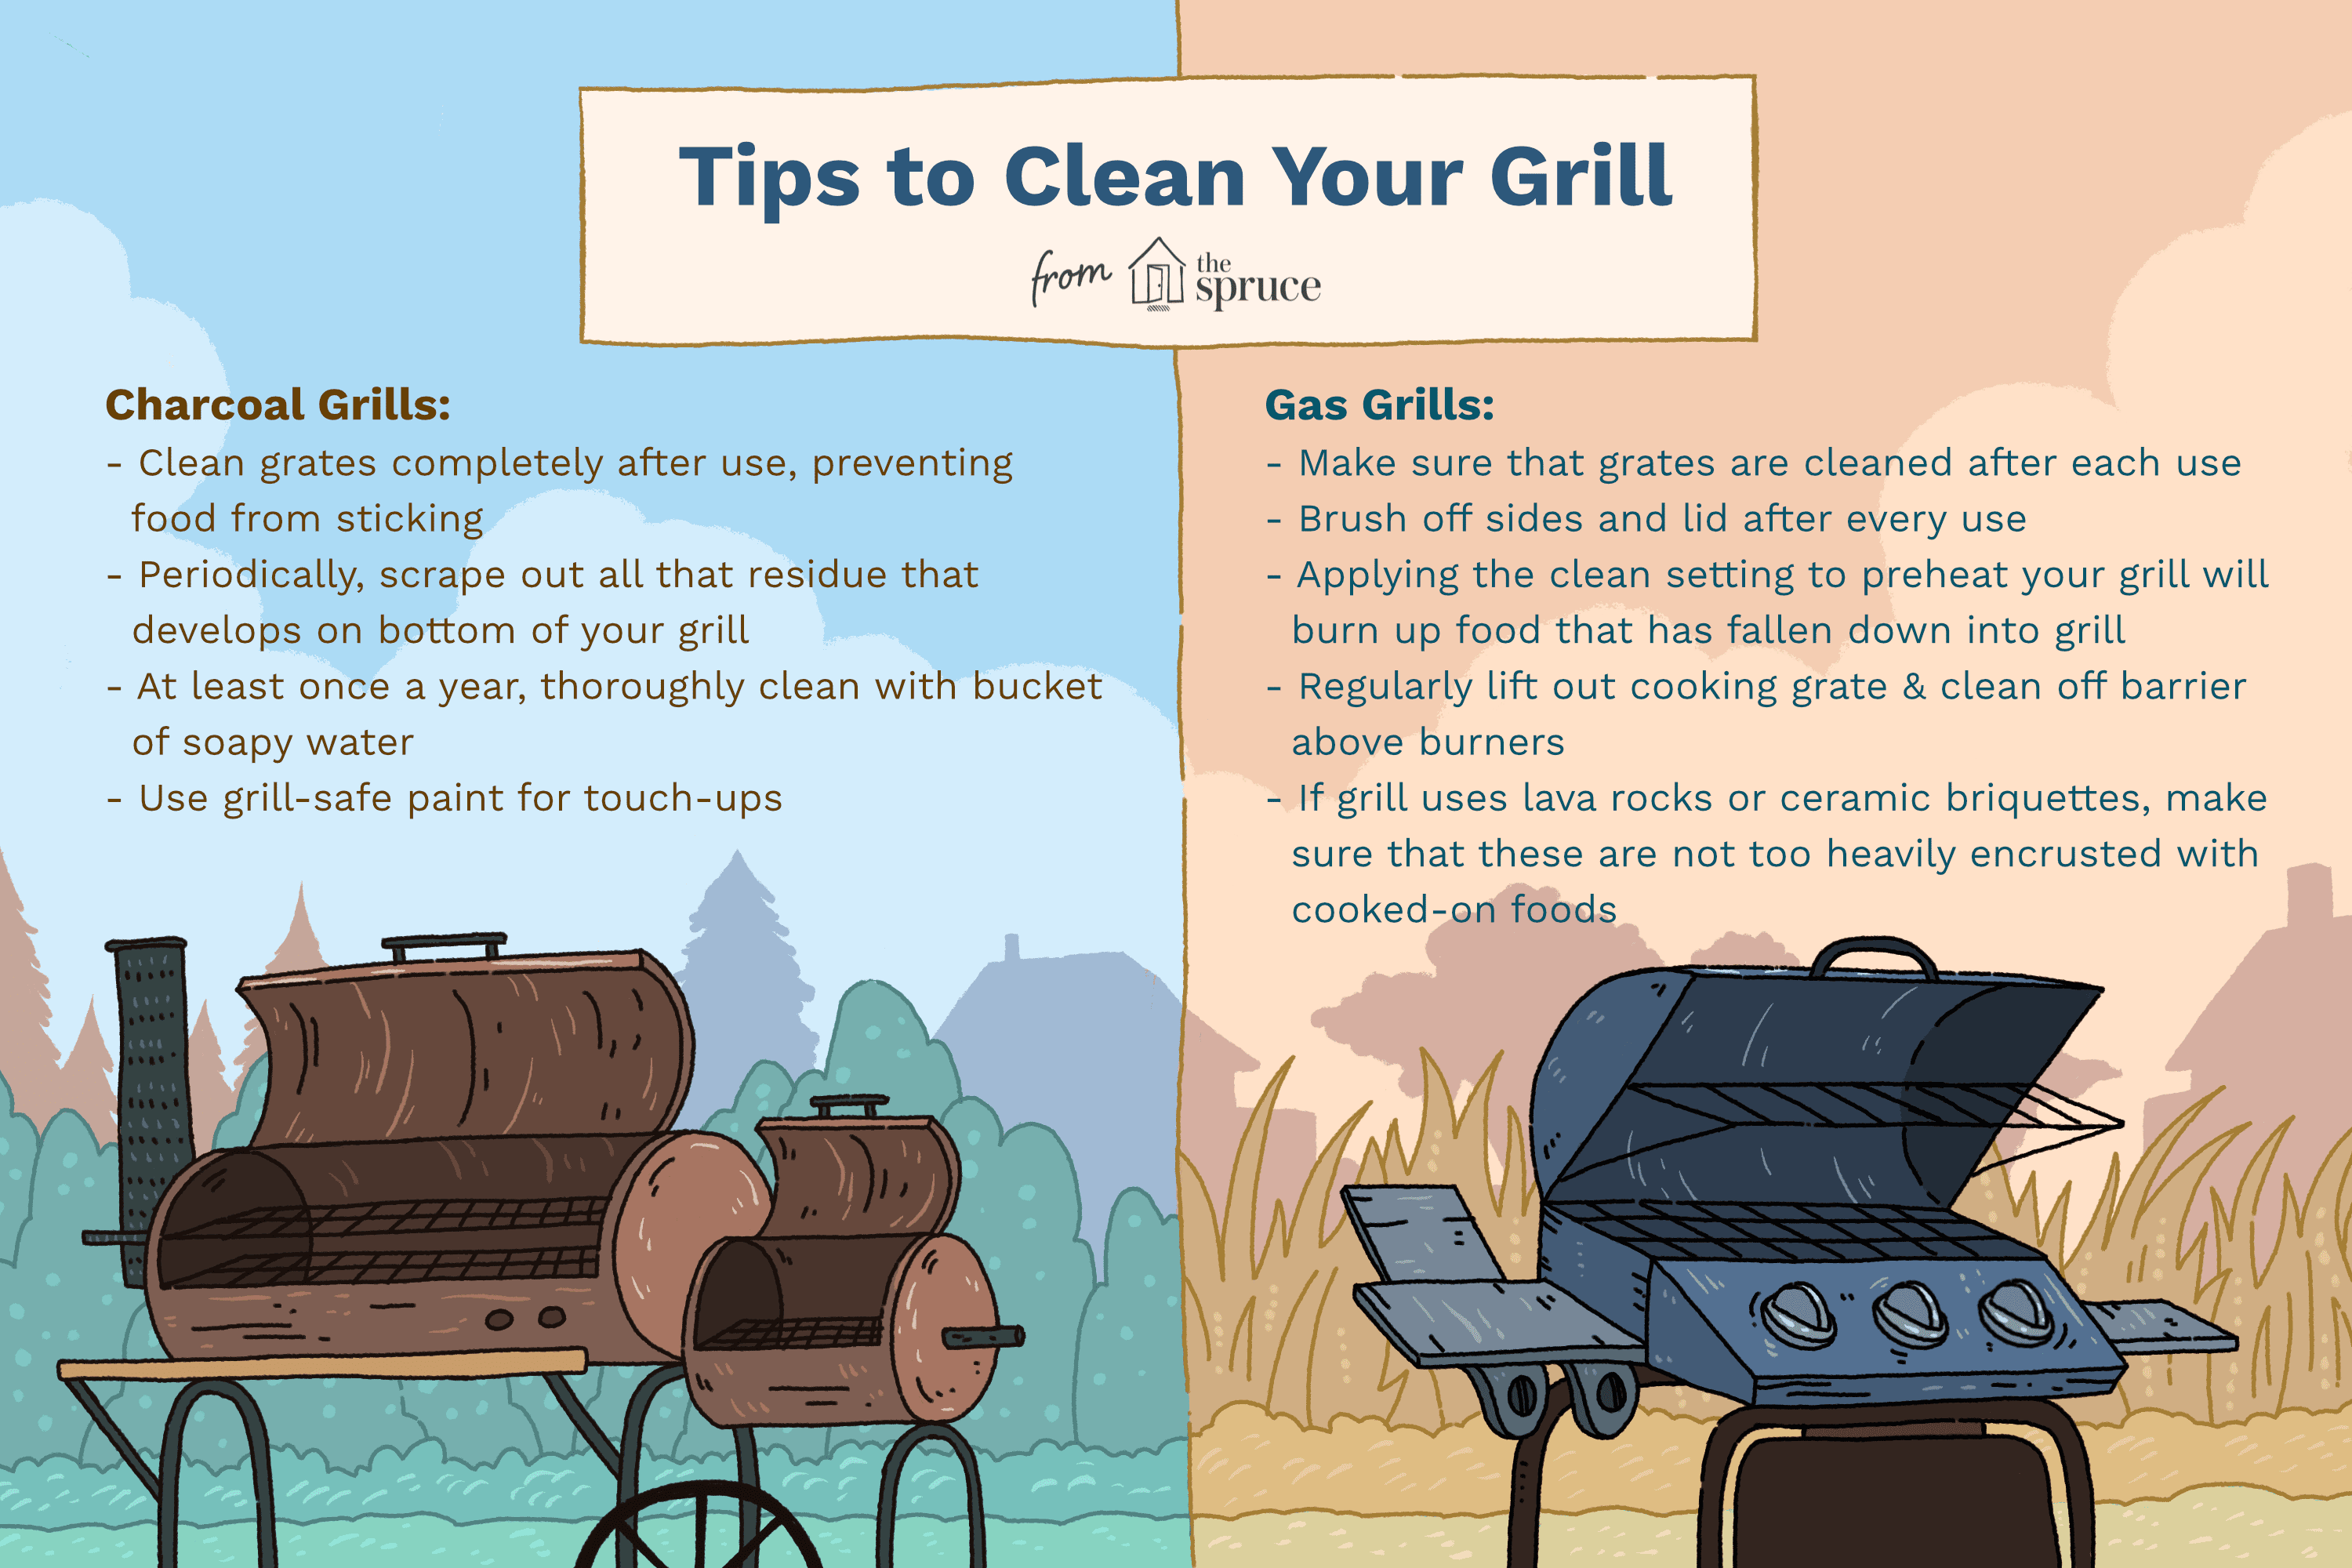 Tips to Clean Your Grill